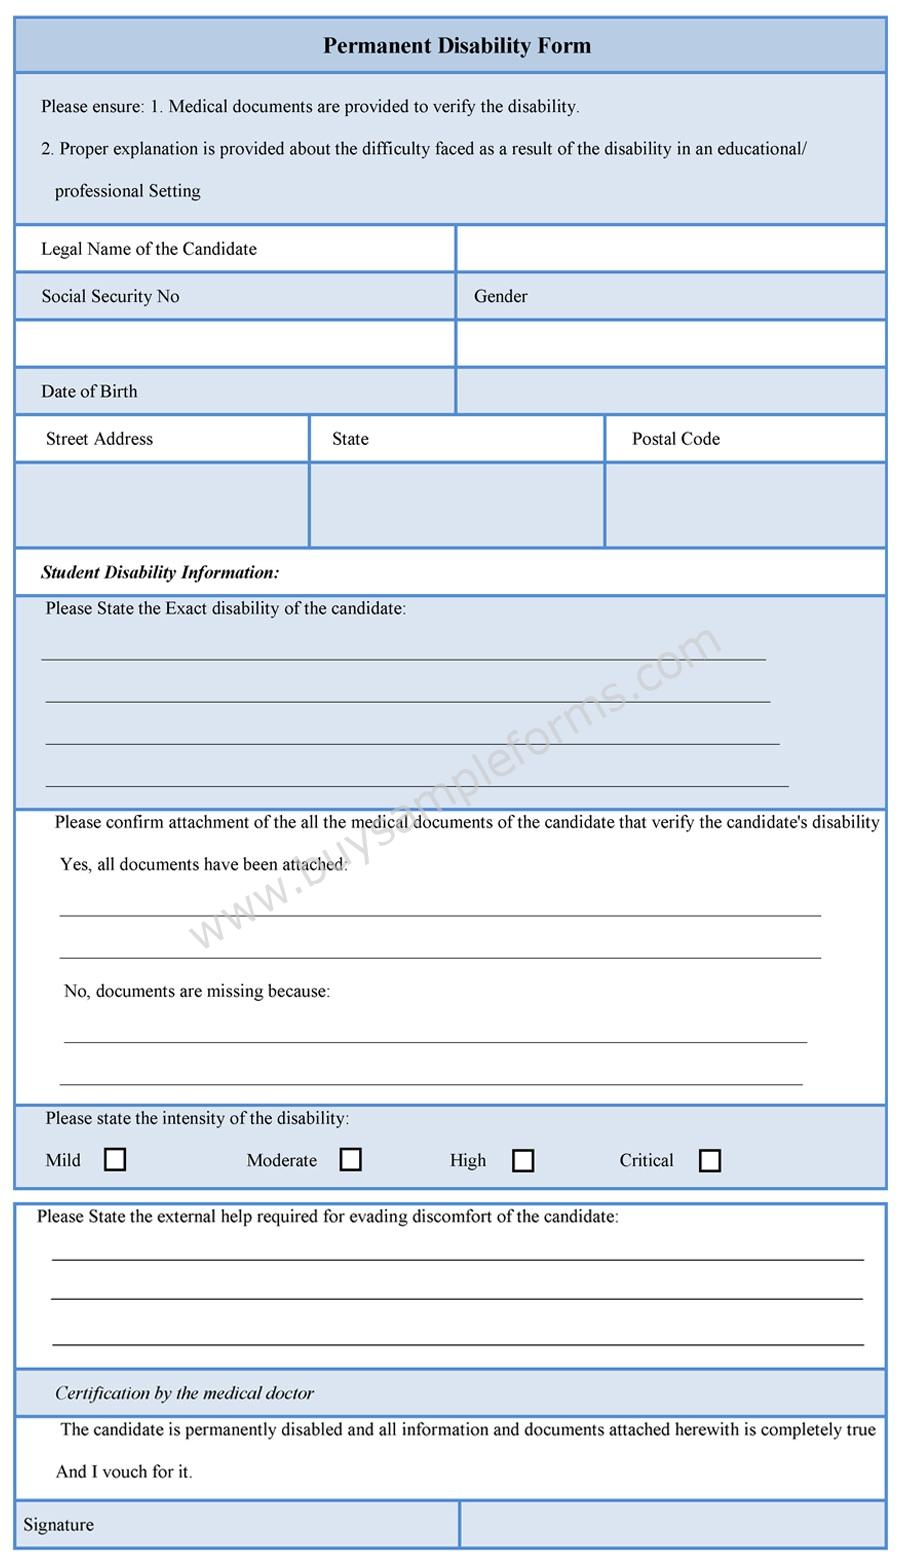 Permanent Disability Form